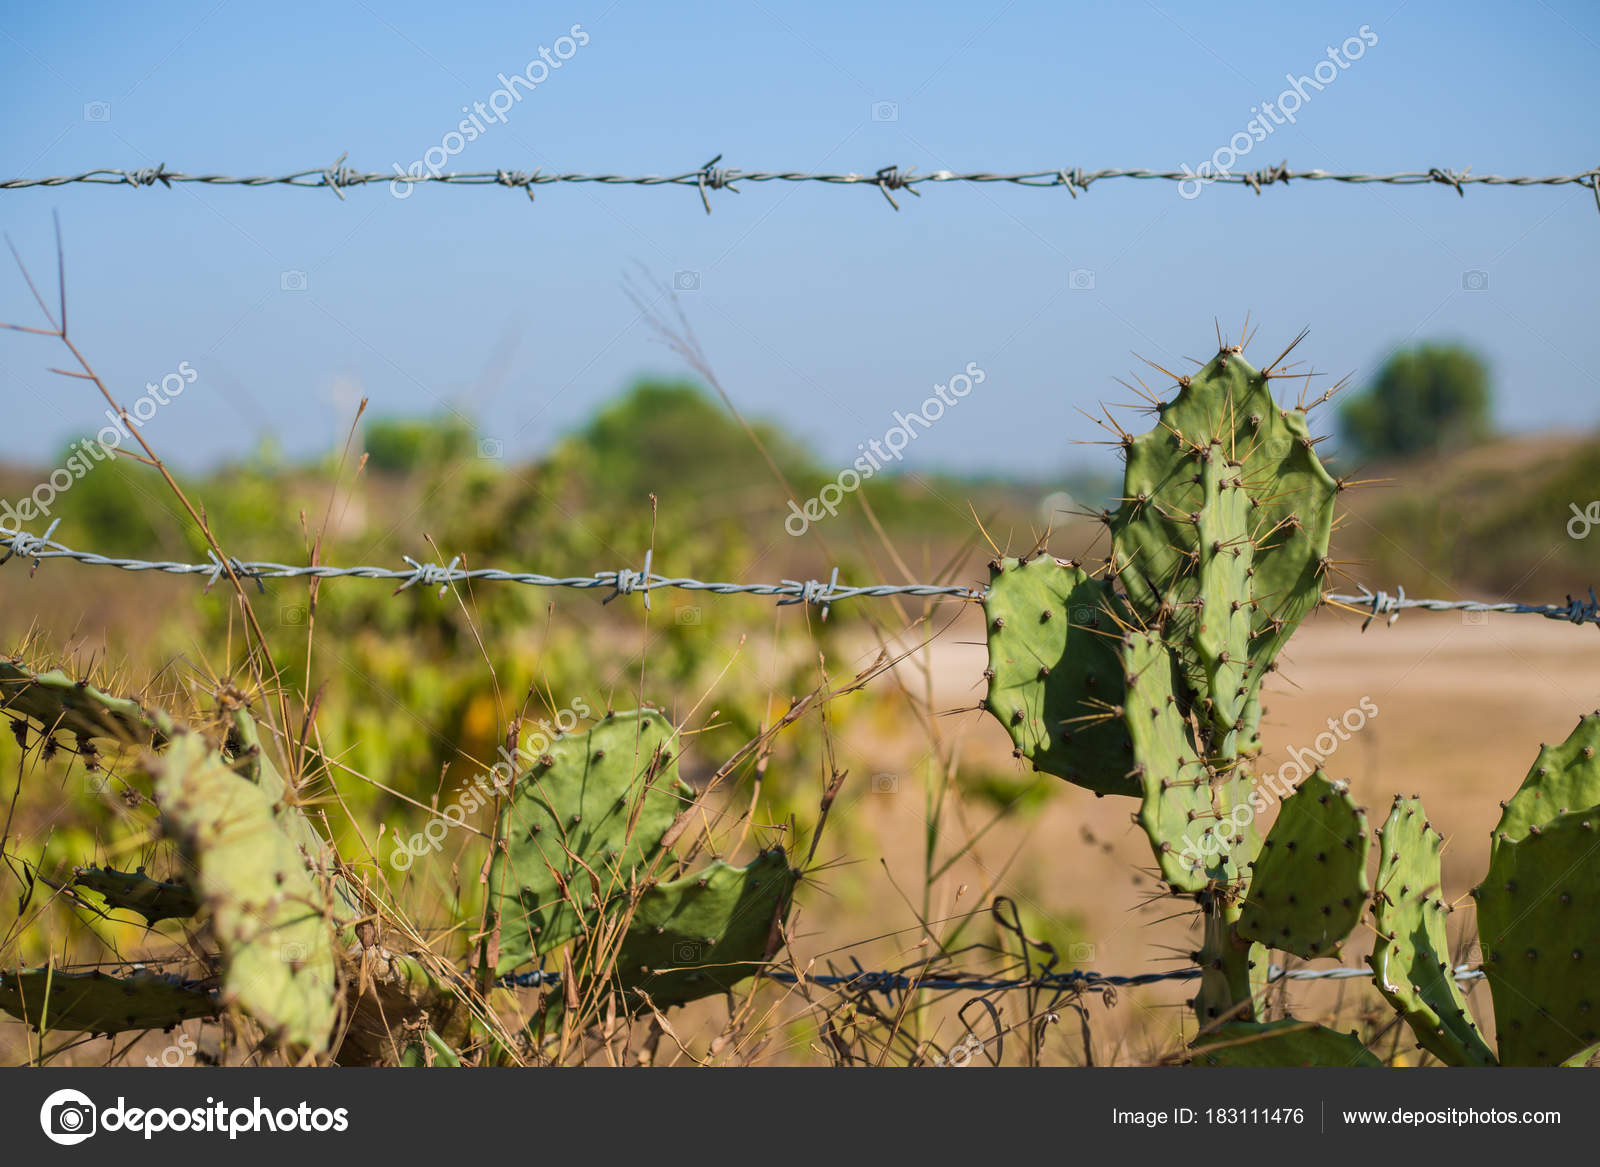 A Old Rustic Barb Wire Fence Next To Desert Cactus This Represents Control And Force With Metal Limits The Countryside Is Necessary